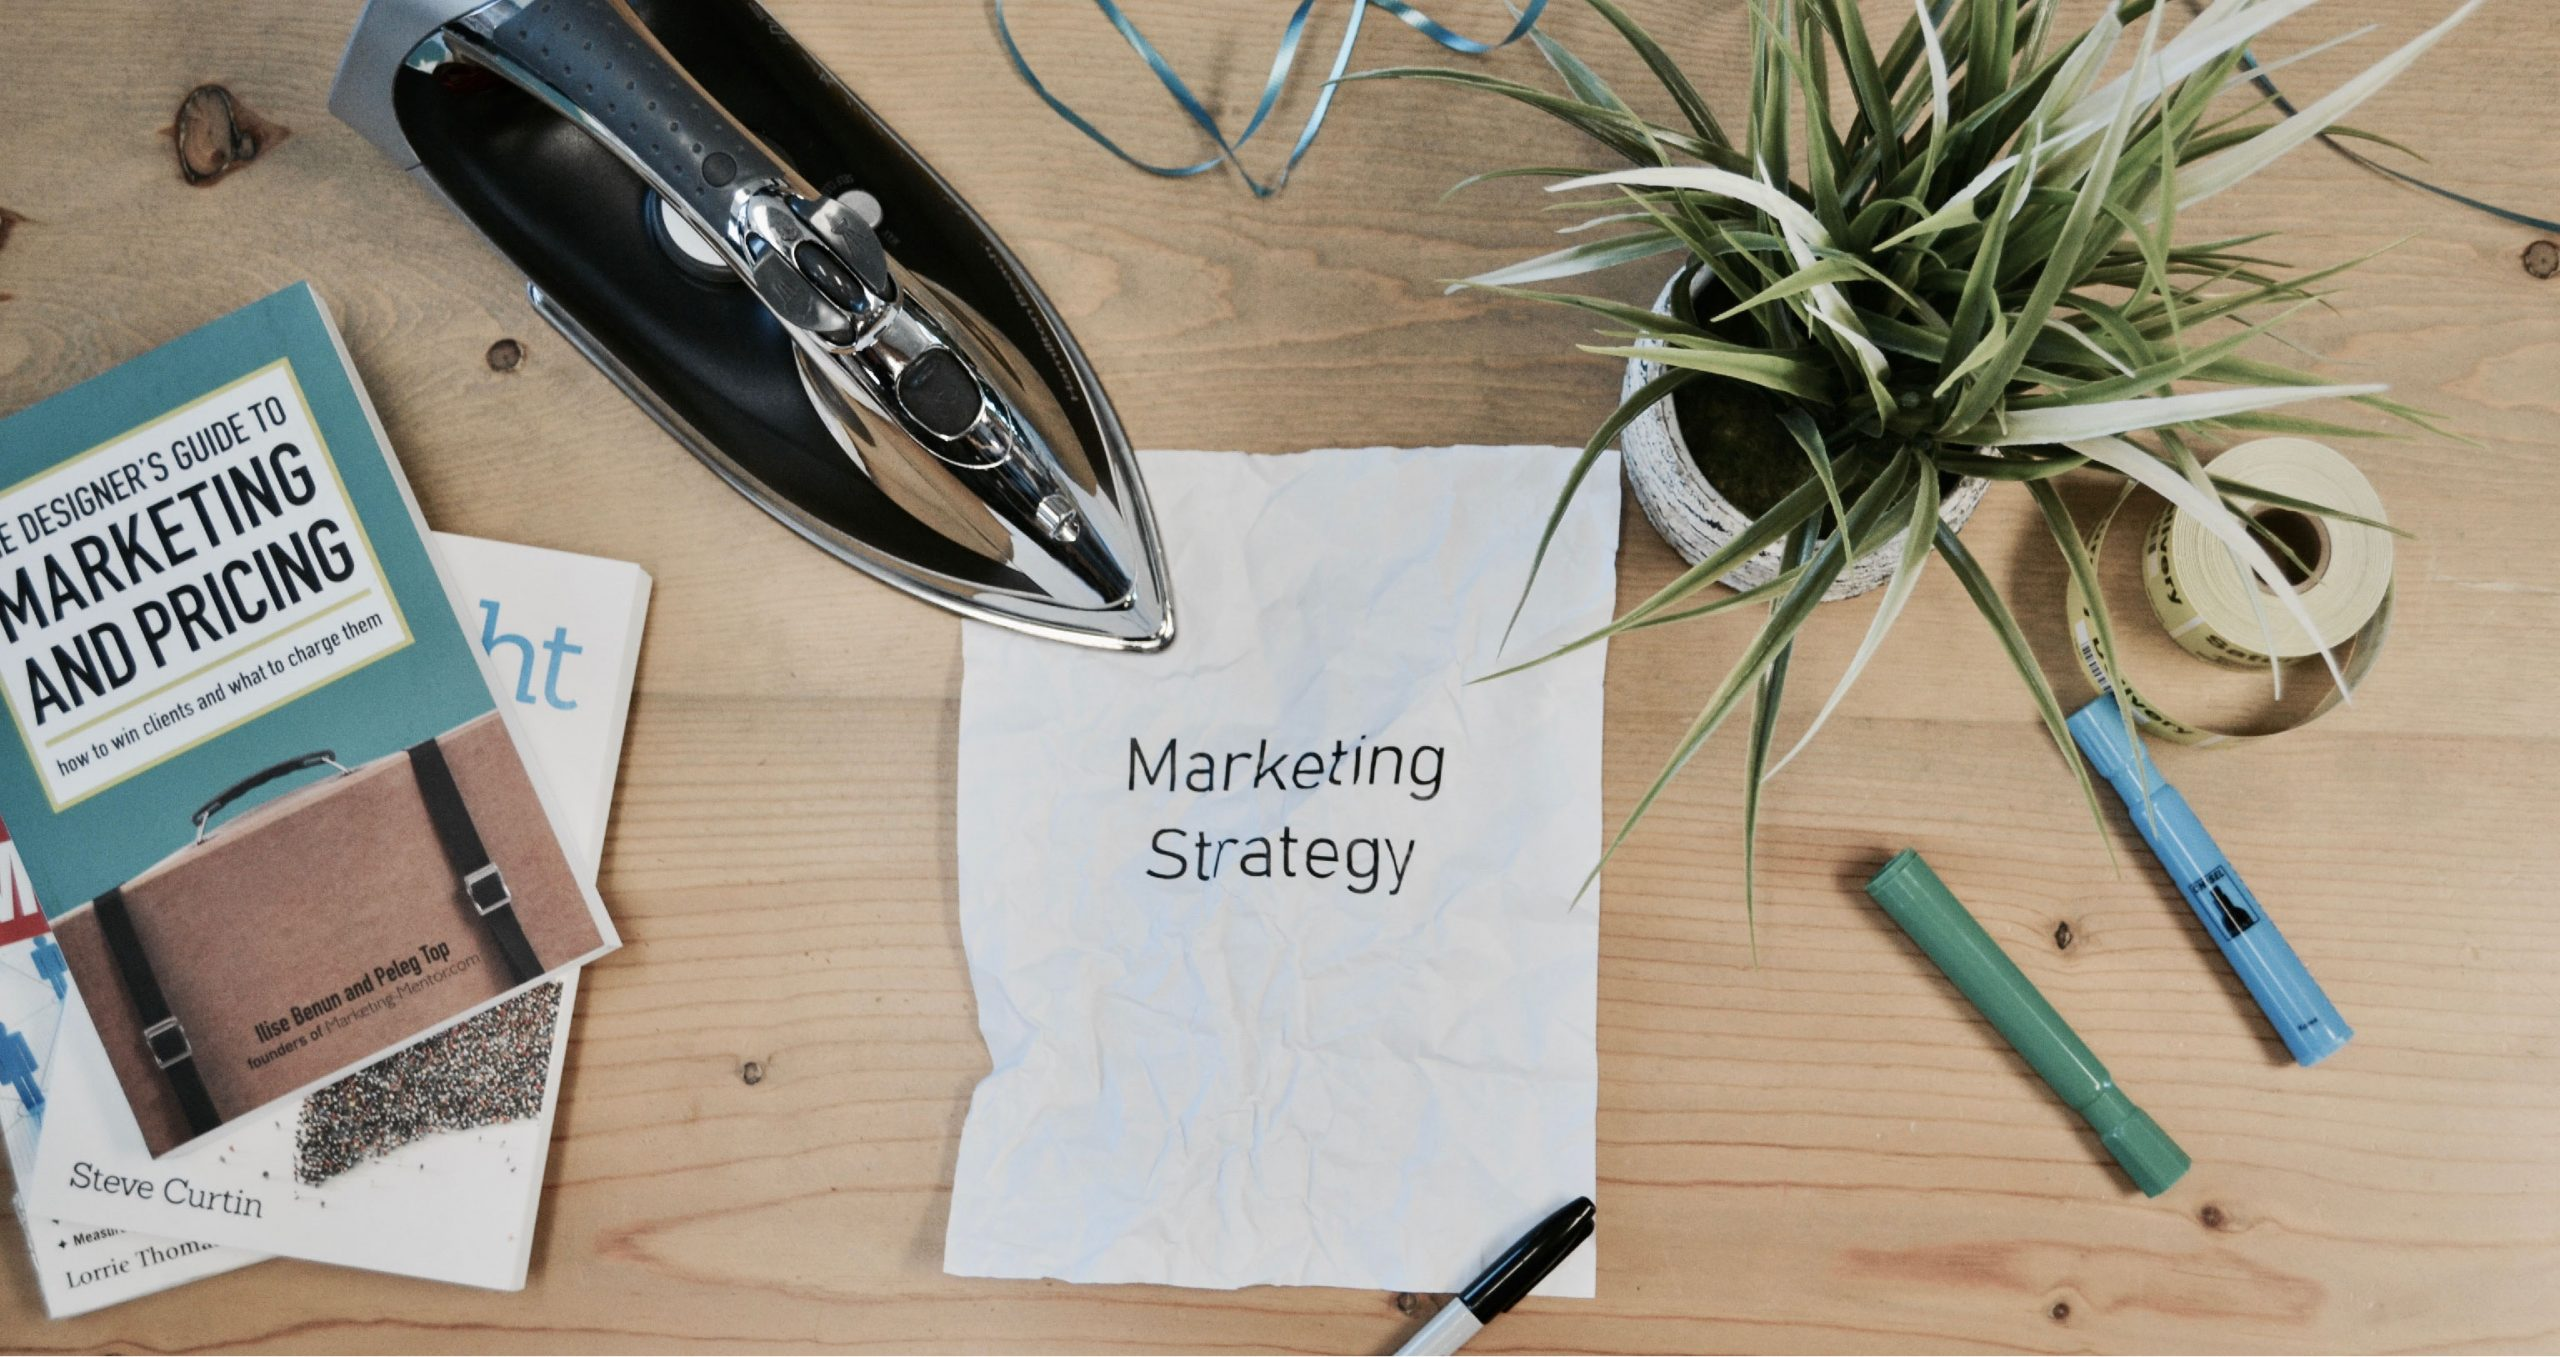 A photo of a paper that says Marketing Strategy with an iron next to it